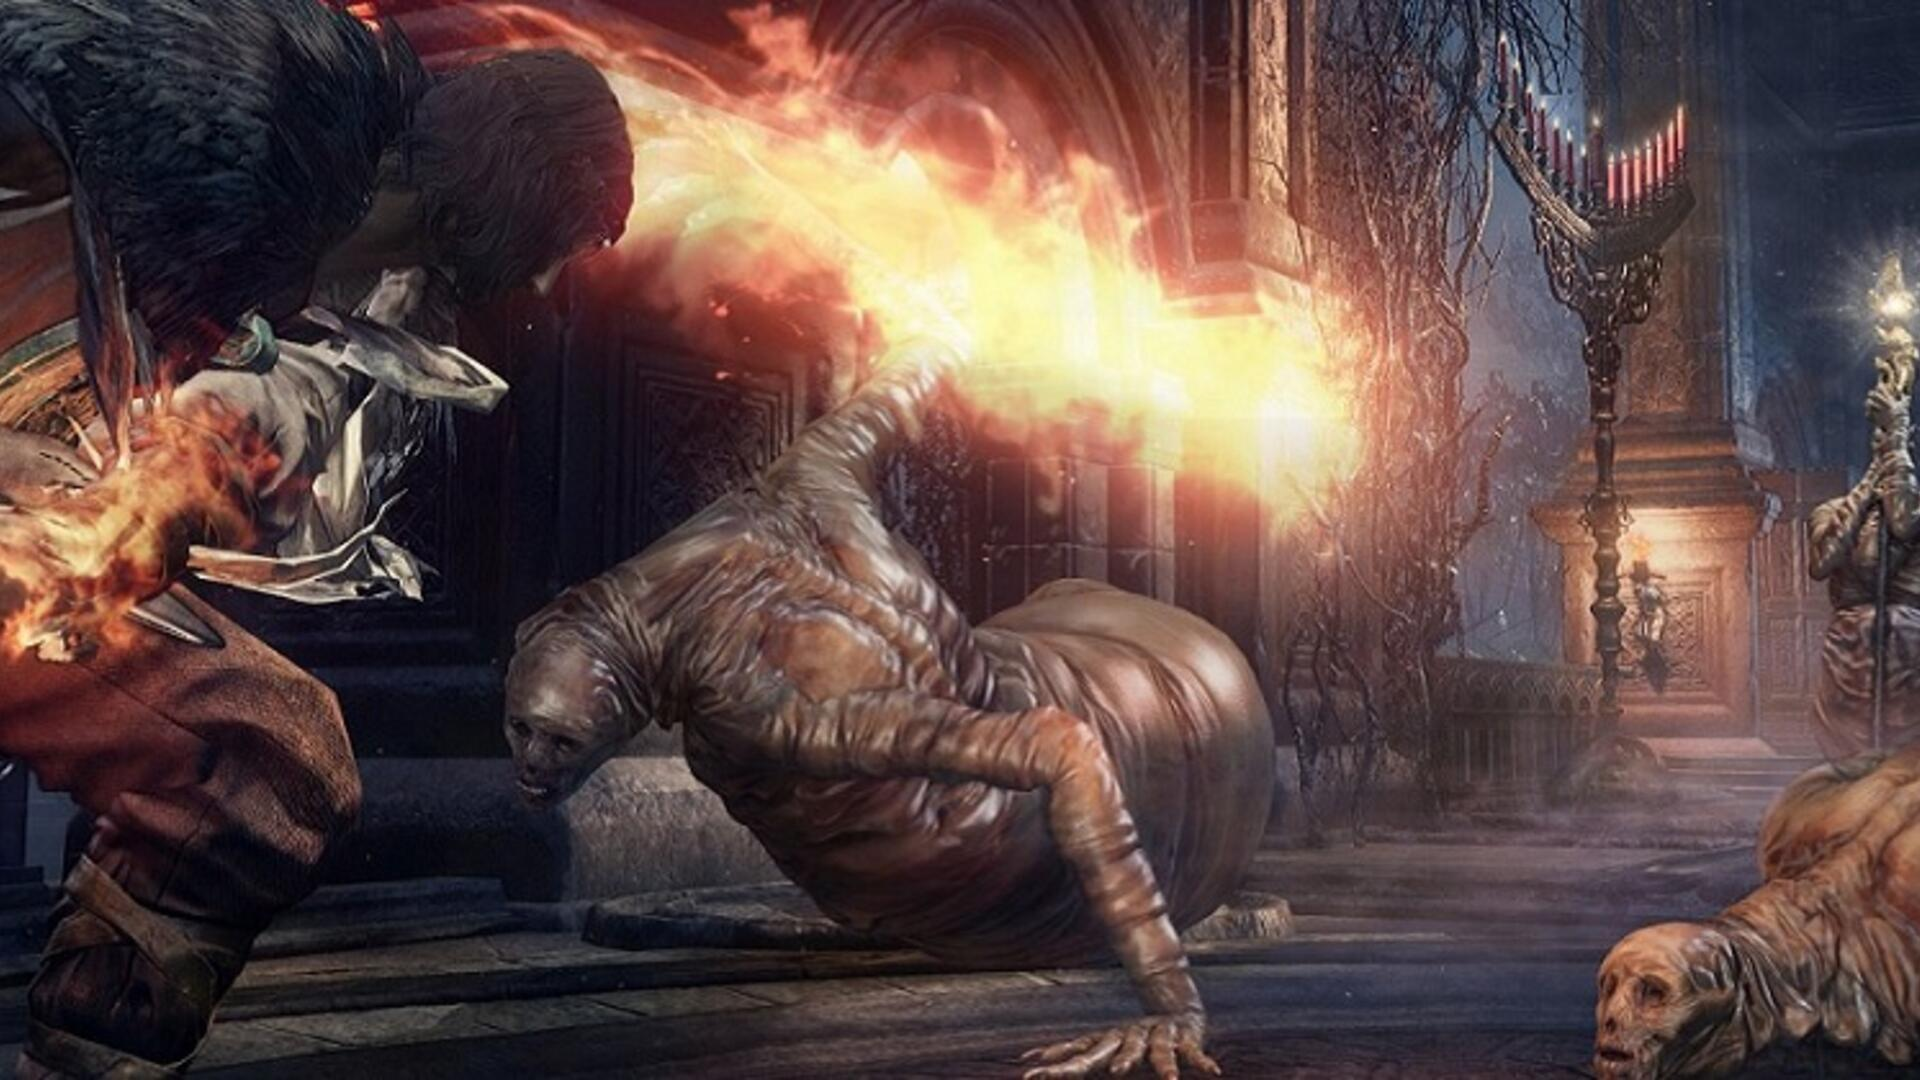 Stream: Watch Kat As She Muddles Through Dark Souls 3 [Finished]